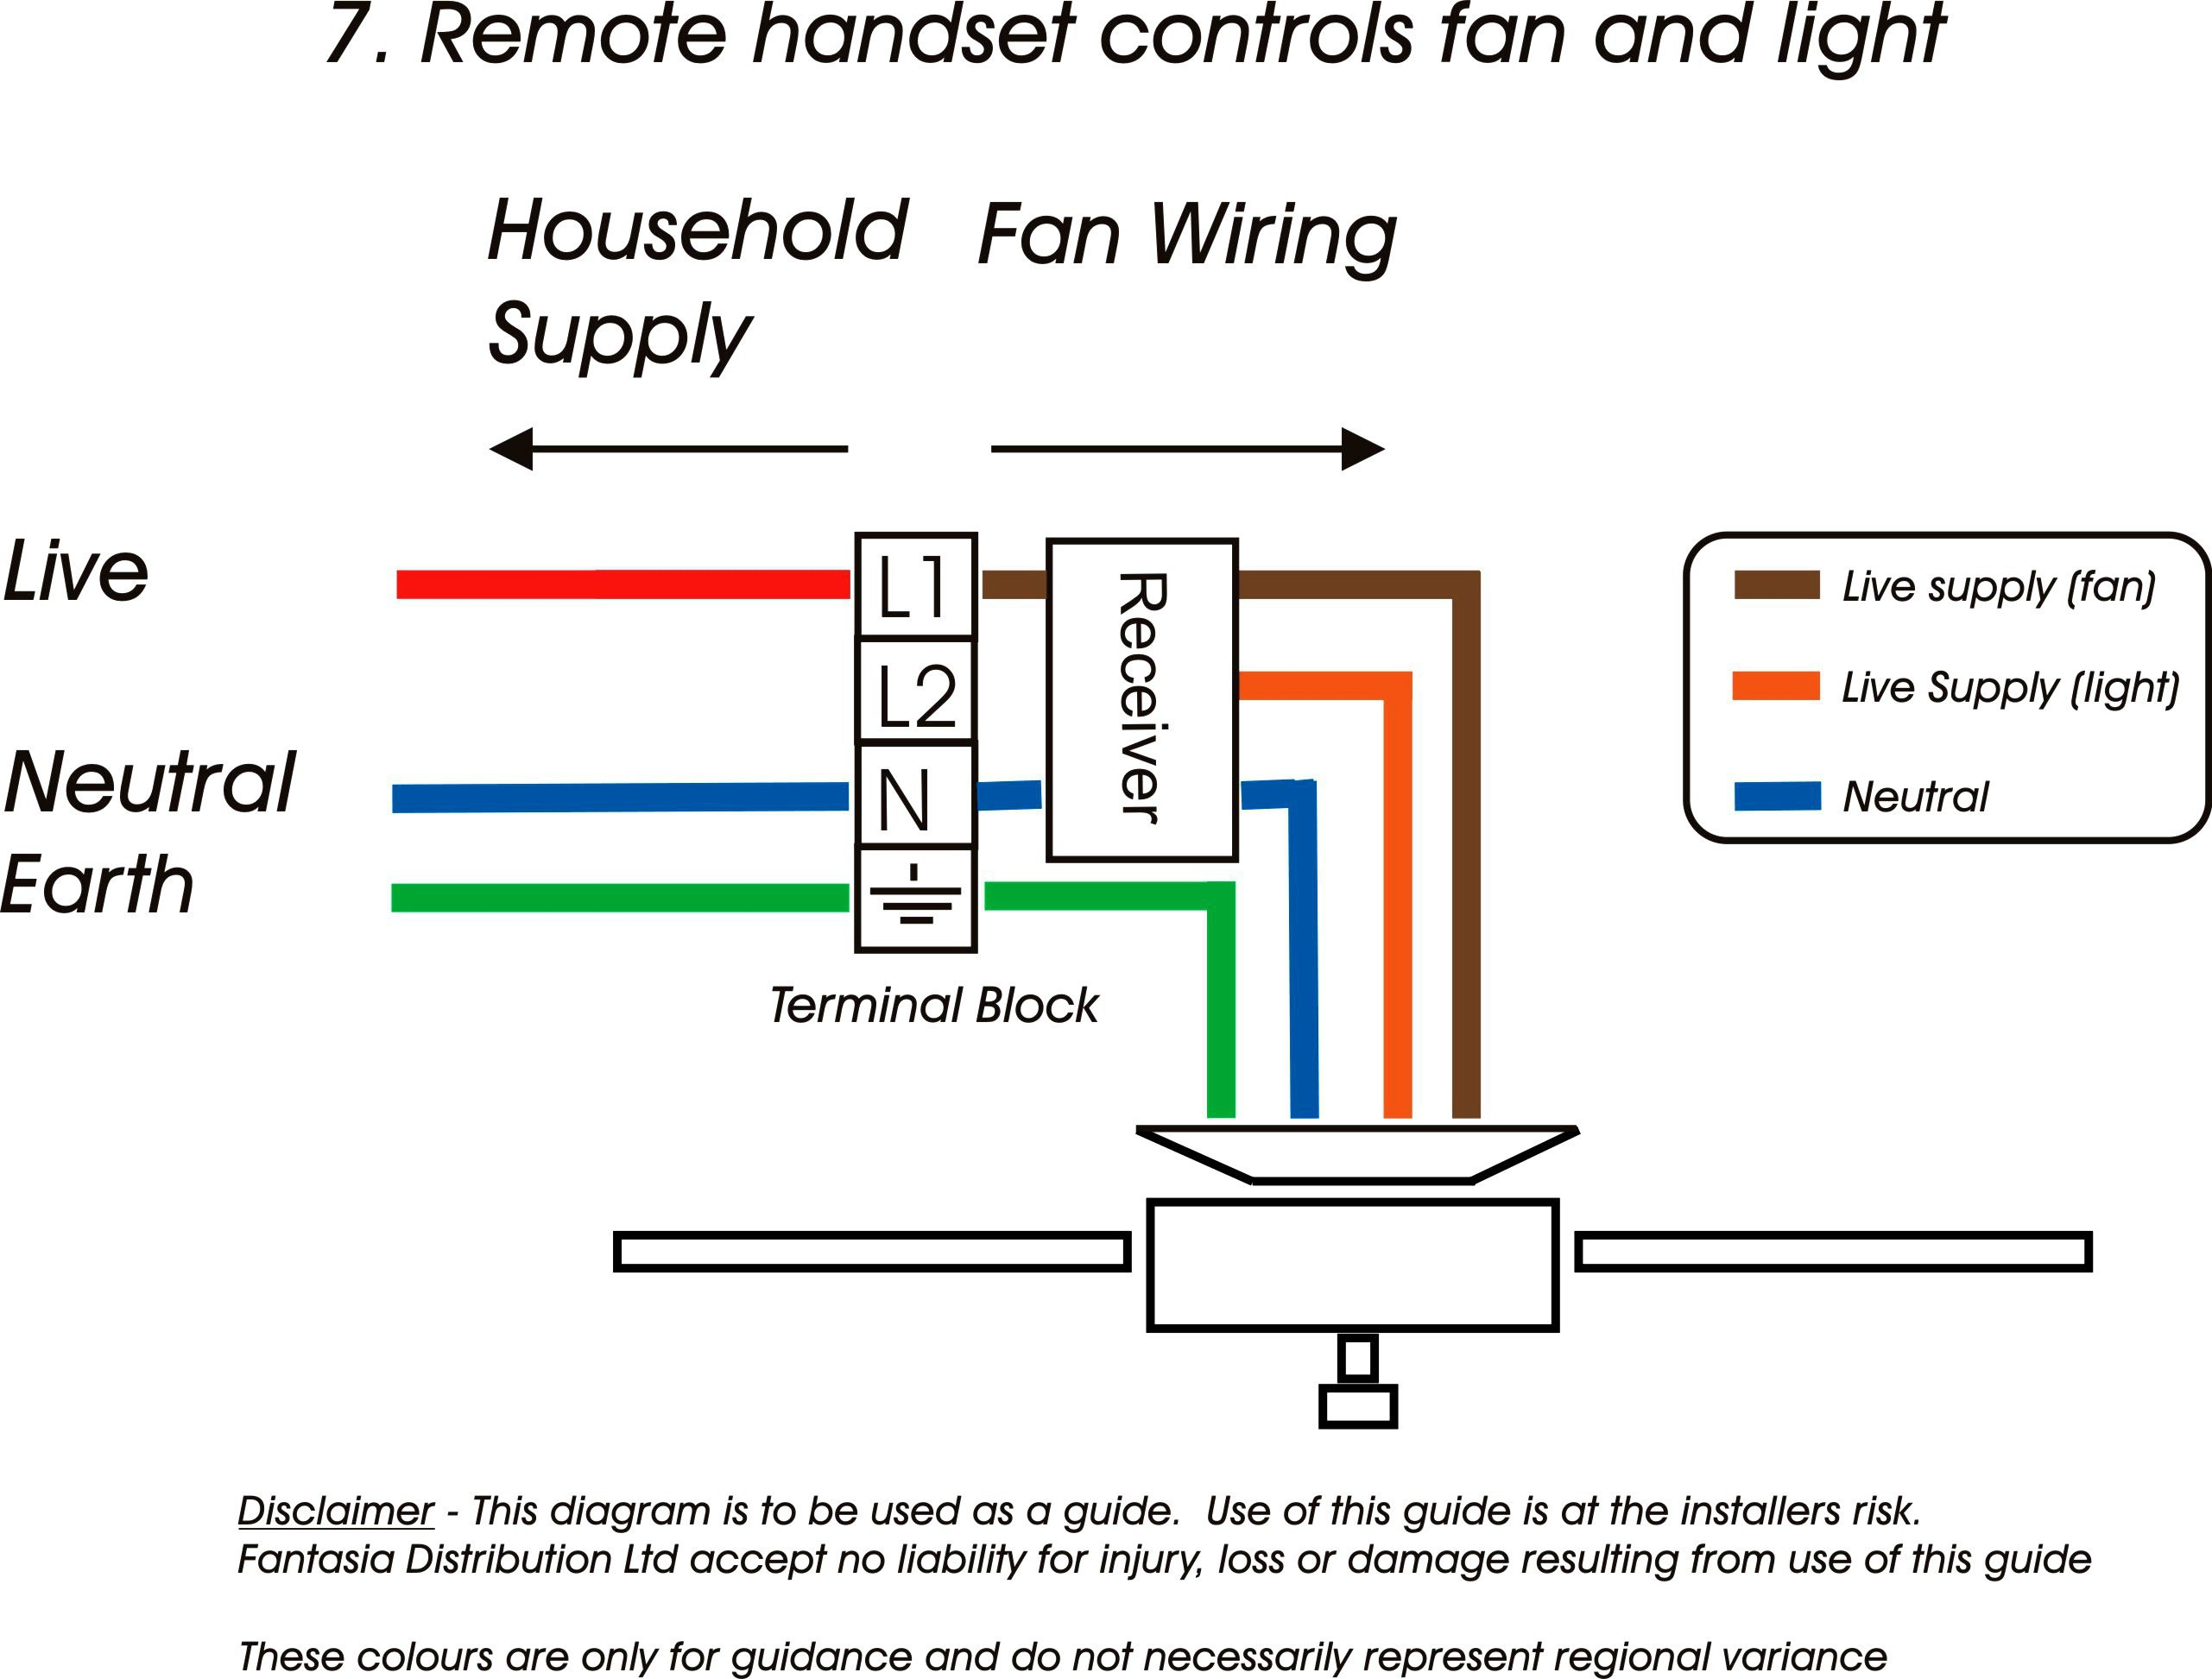 Casablanca Ceiling Fan Wiring Diagram - Ceiling Fan Wiring Diagram with Capacitor Lovely Amazing Casablanca 10 12h